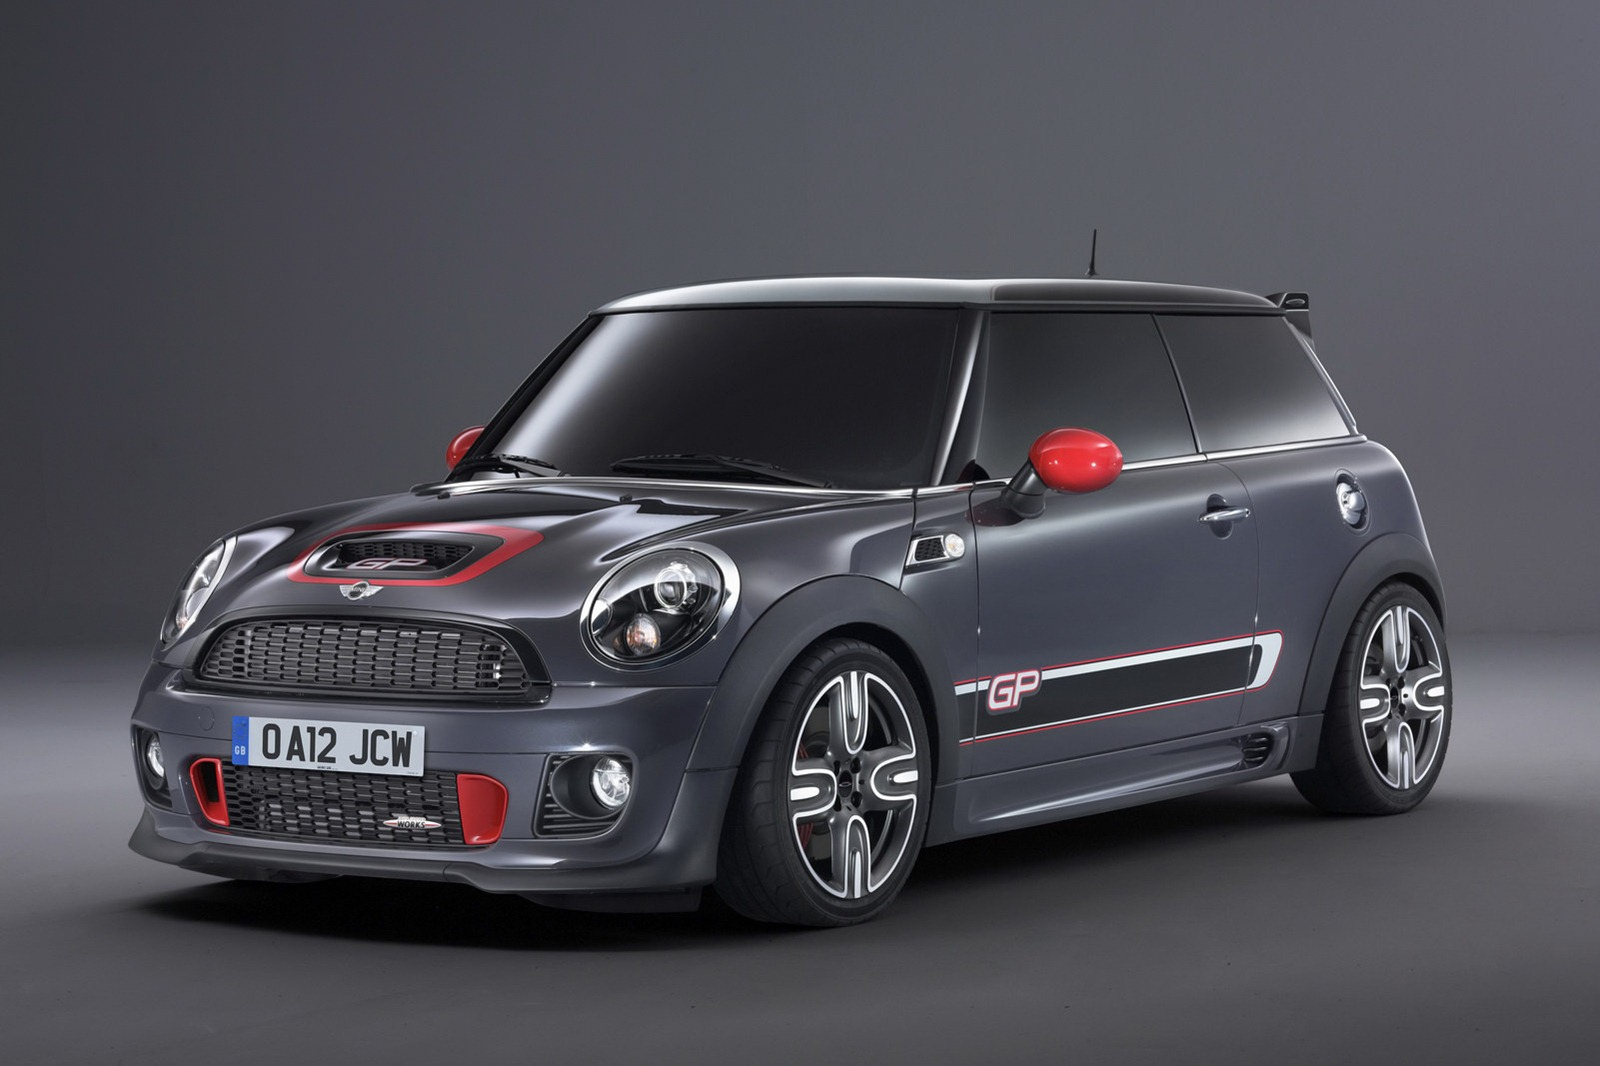 2017 Mini John Cooper Works Gp